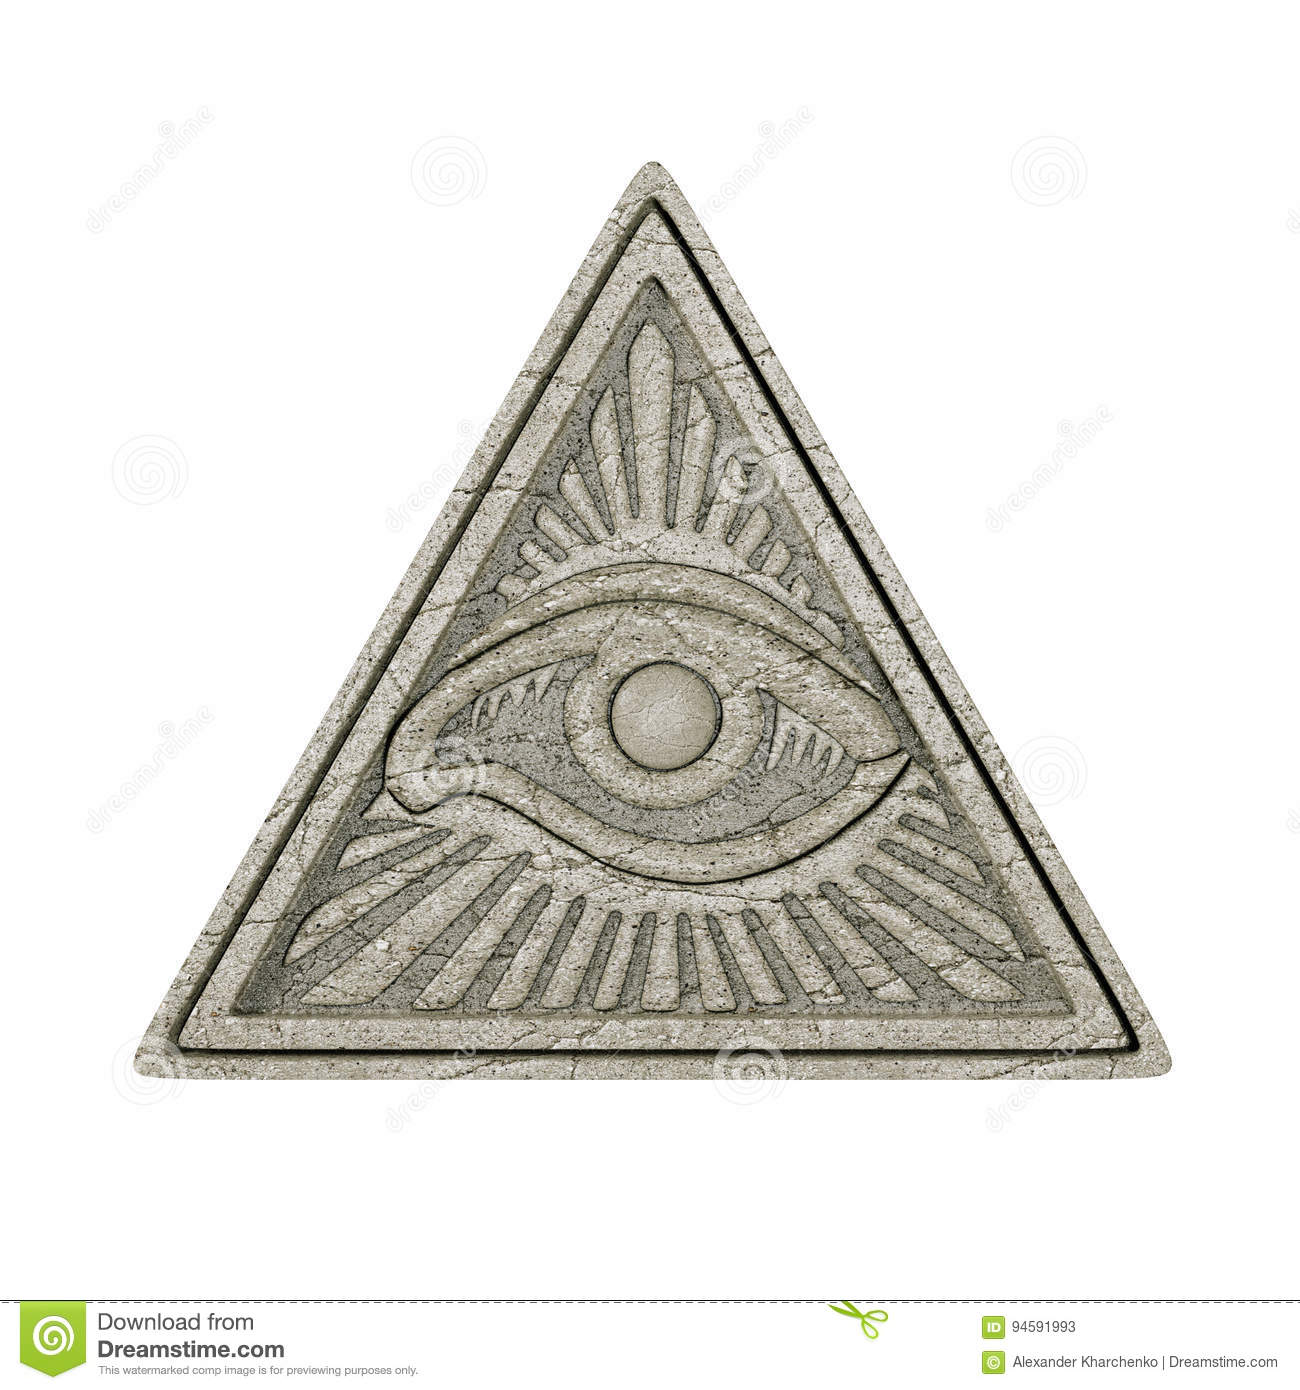 Masonic symbol concept all seeing eye inside pyramid triangle masonic symbol concept all seeing eye inside pyramid triangle biocorpaavc